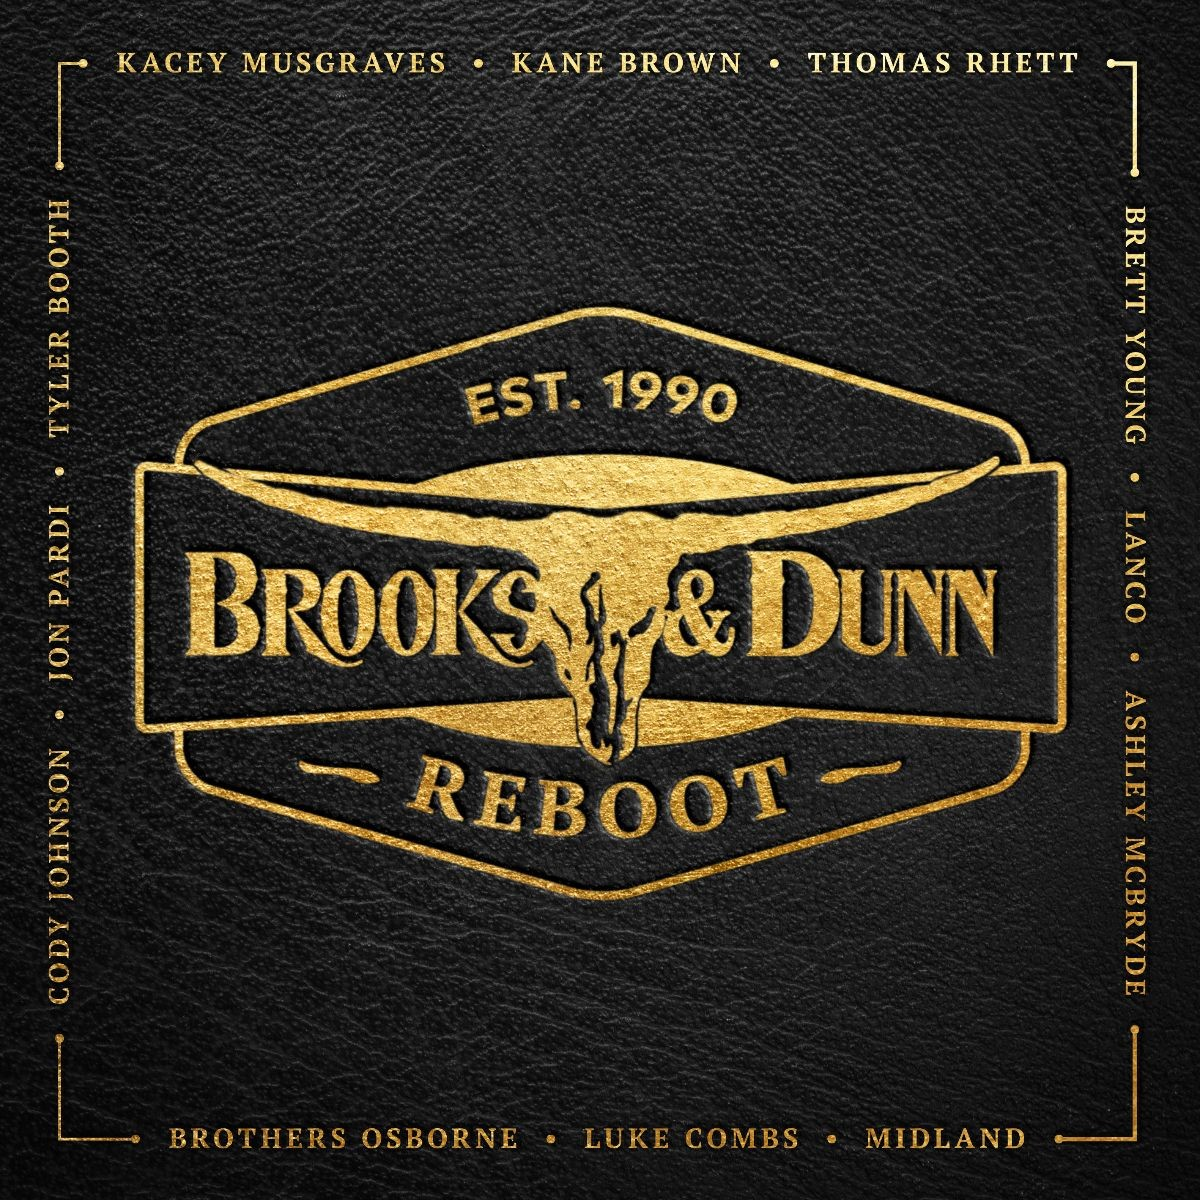 BROOKS & DUNN ROUND UP NASHVILLE'S FRESHEST, MOST UNIQUE ARTISTS FOR NEW COLLABORATION PROJECT REBOOT, AVAILABLE APRIL 5